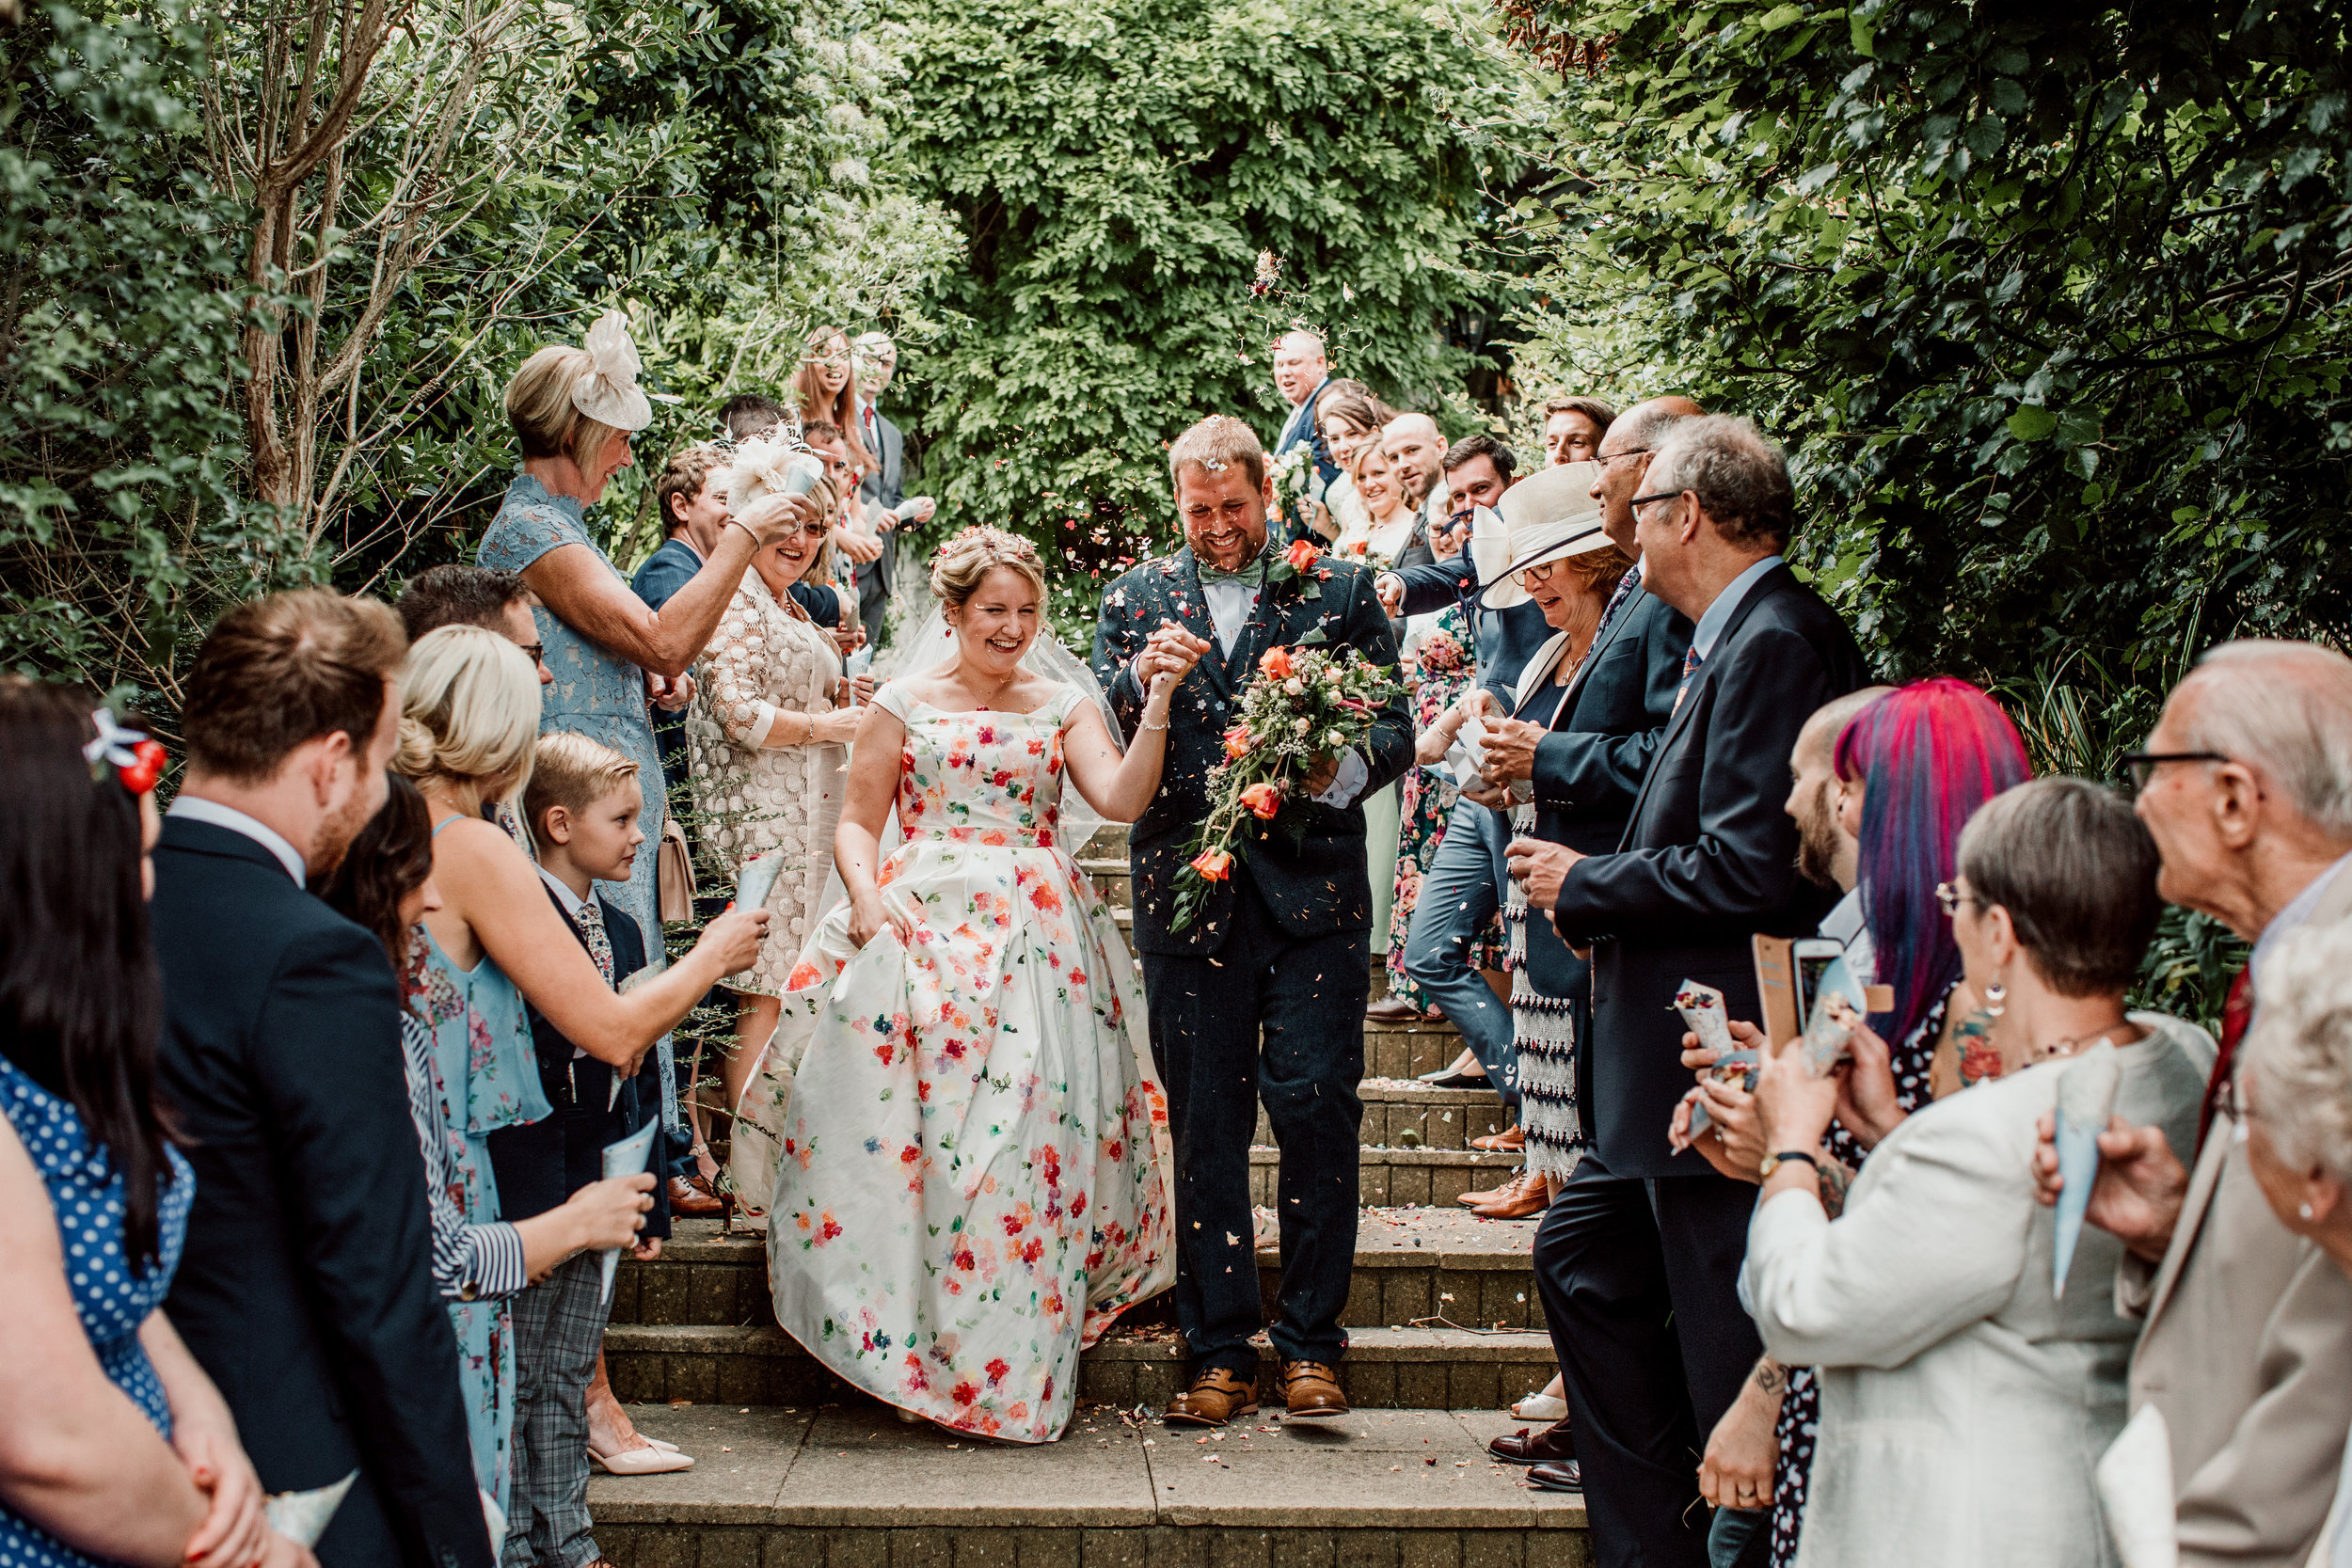 JON_HARPER_COTSWOLD_WEDDING_PHOTOGRAPHY_LITTLE_ORCHARD_ALPACAS_182_OF_568.JPG